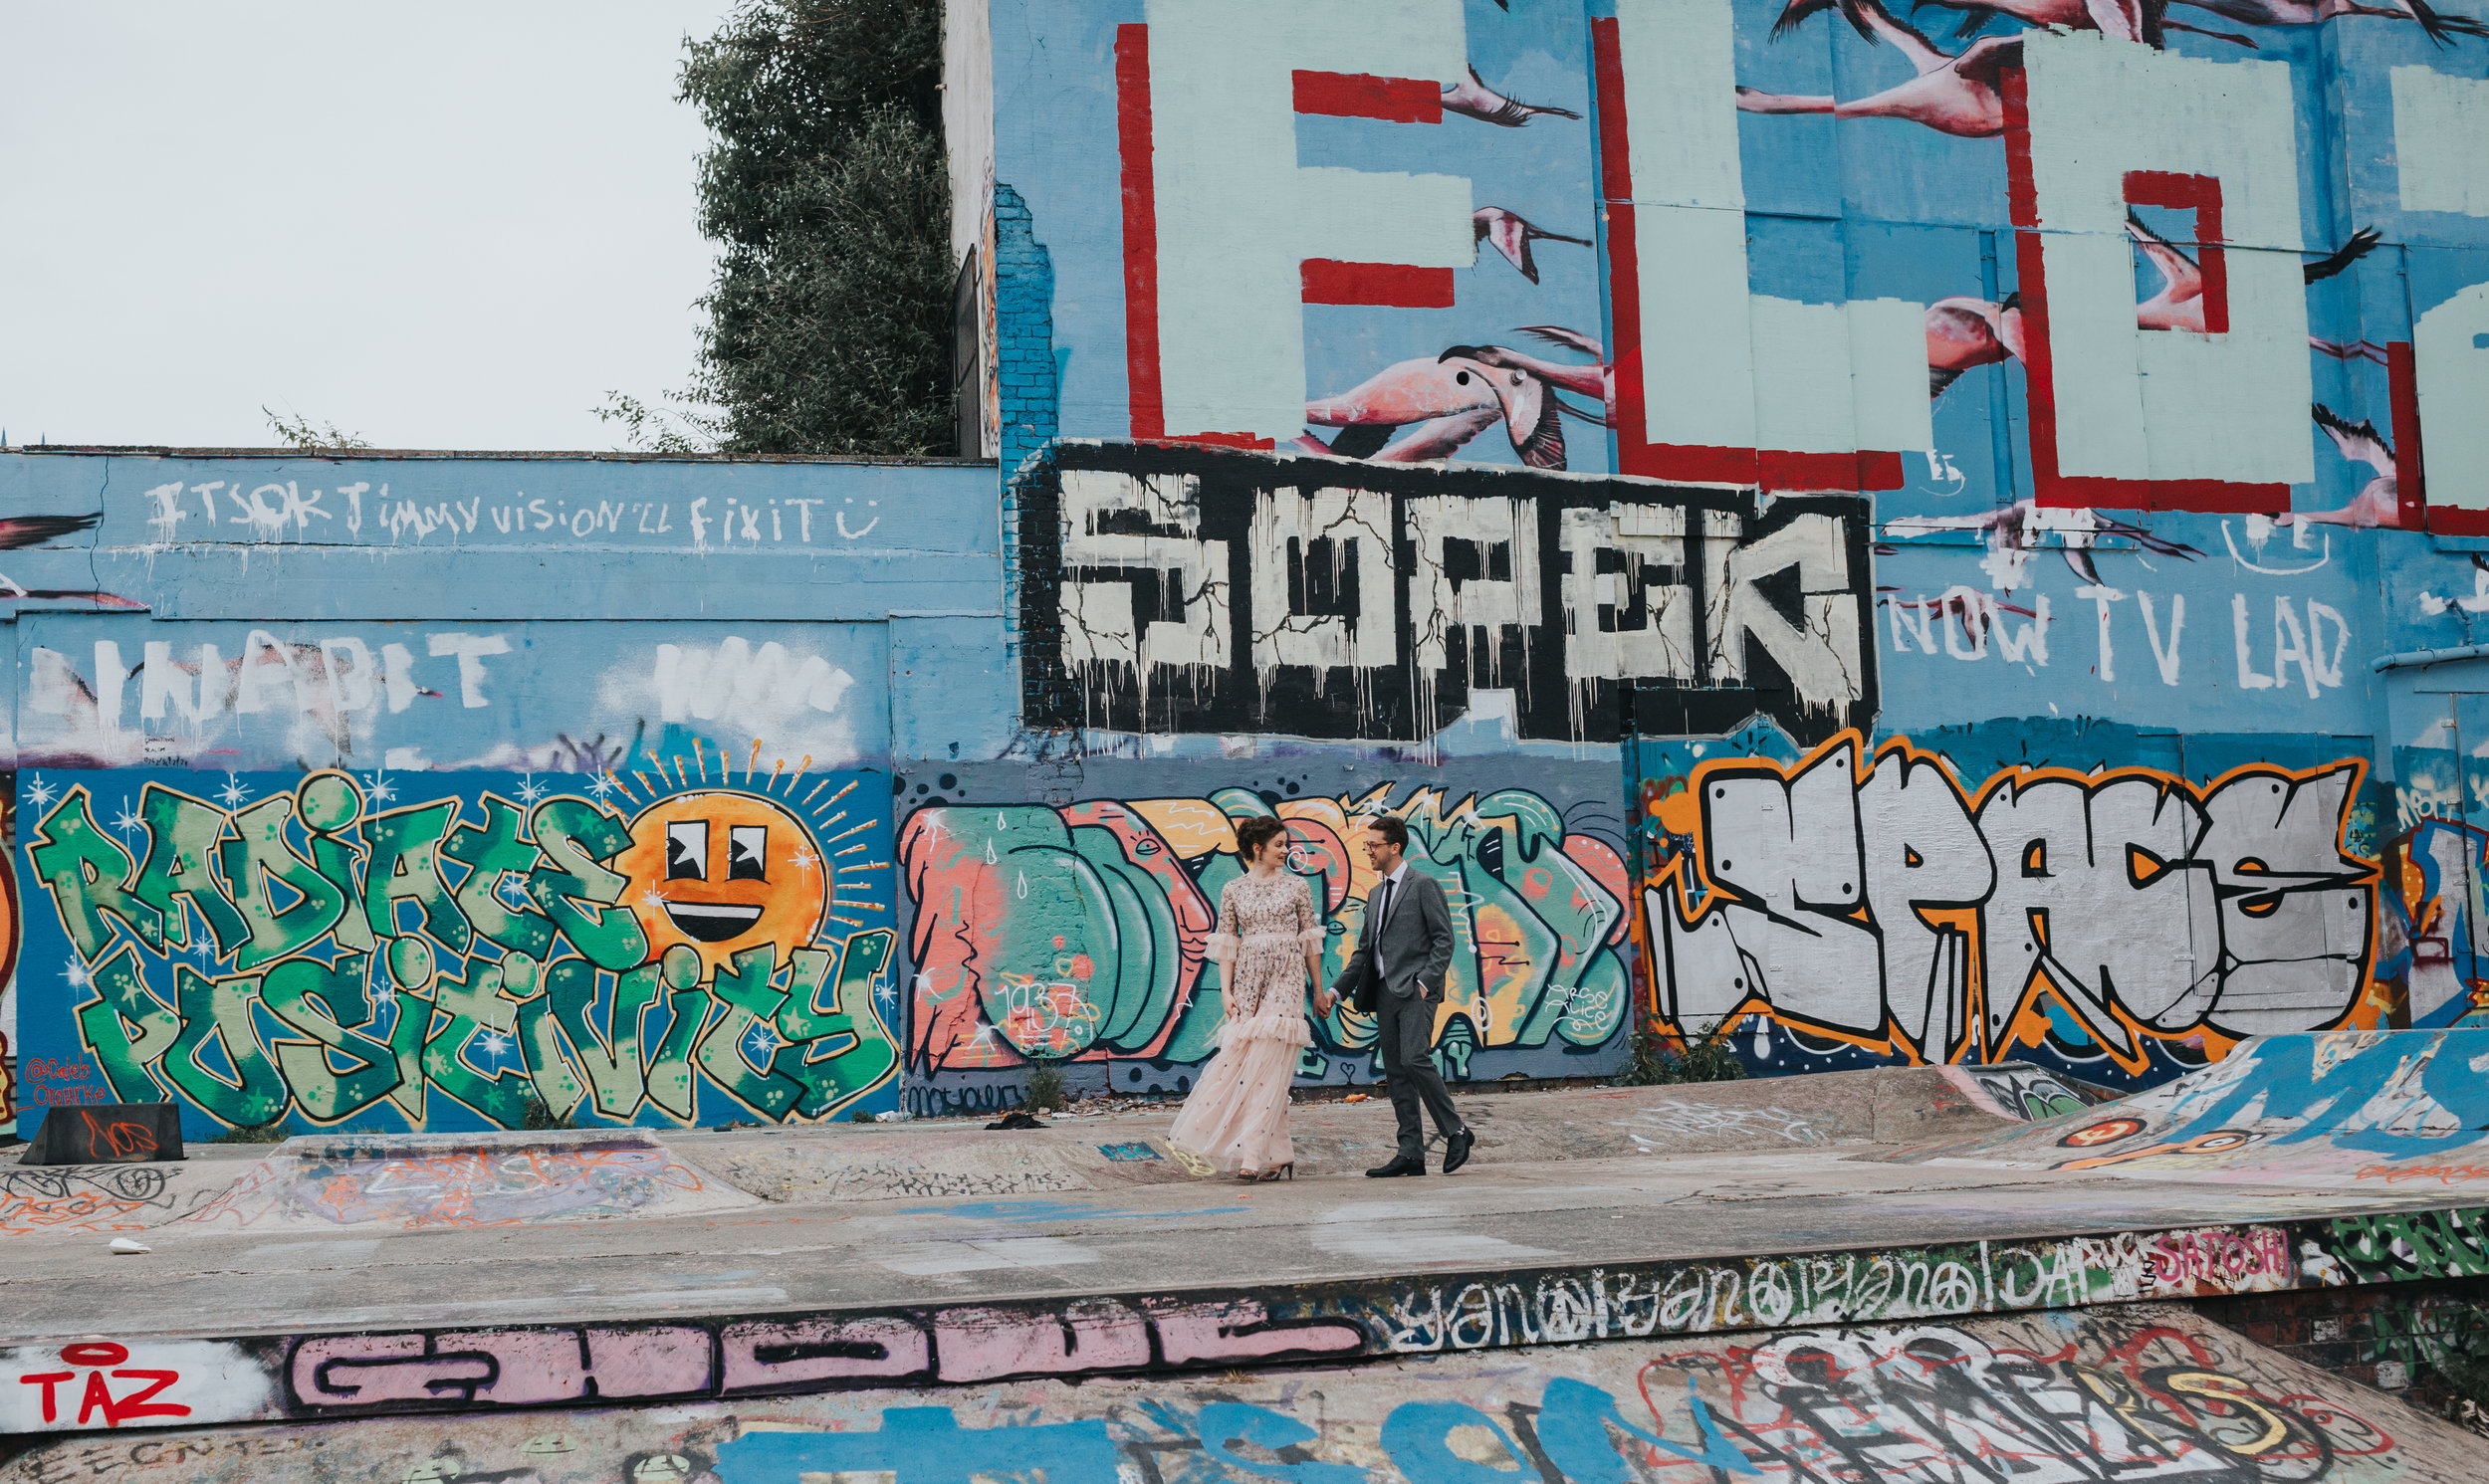 Bride and Groom walk through skate park together.